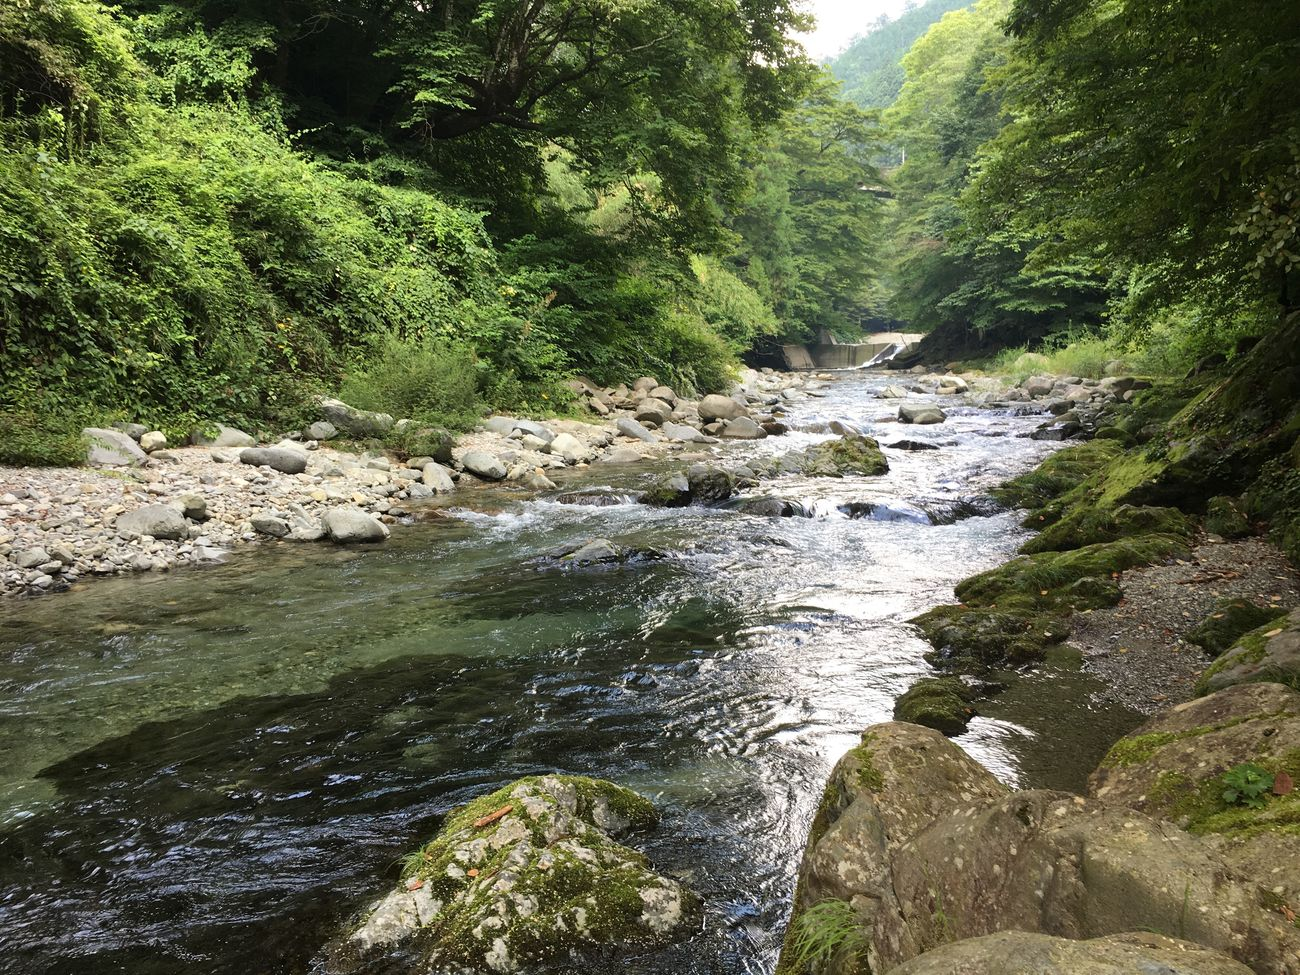 Enjoying Life Hi! 大自然 川 清流 River Enjoy 癒し 緑 Clear Stream Superb View River Swim Happy Forest 風景 Fishing 絶景 Japan Landscape Riverside